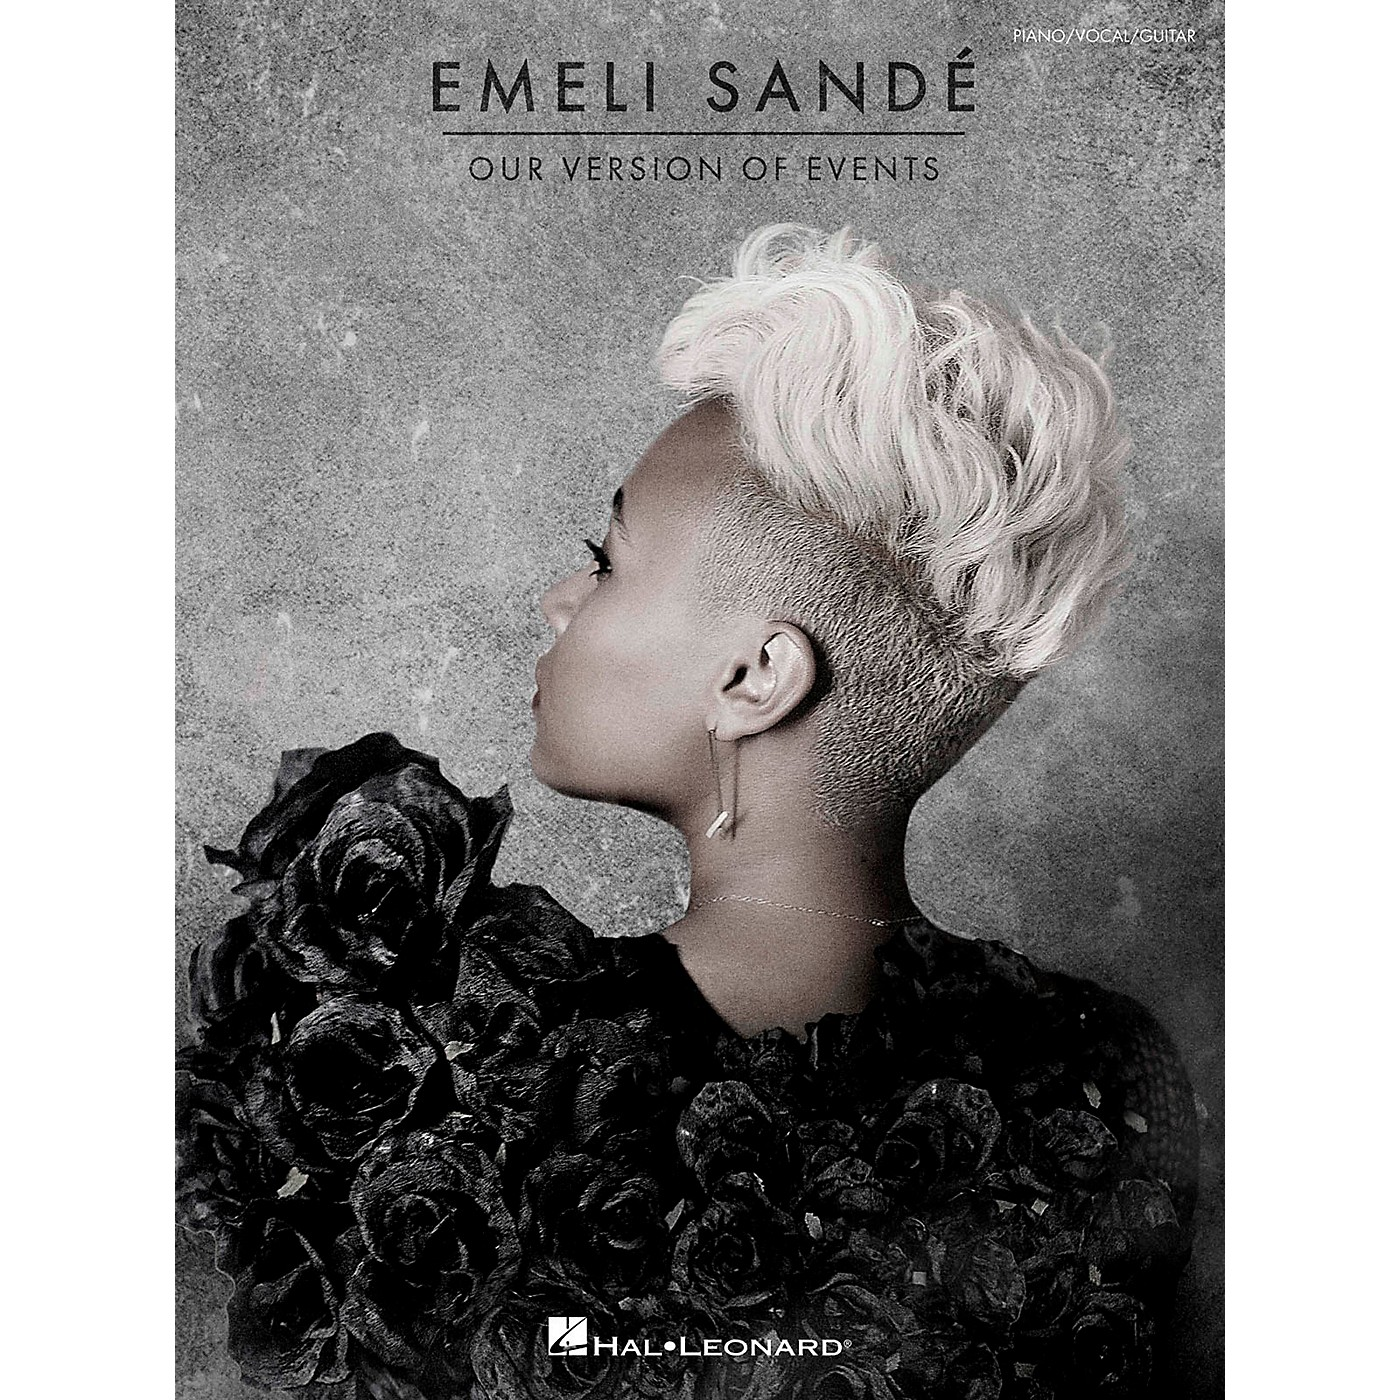 Hal Leonard Emeli Sande - Our Version Of Events for Piano/Vocal/Guitar thumbnail